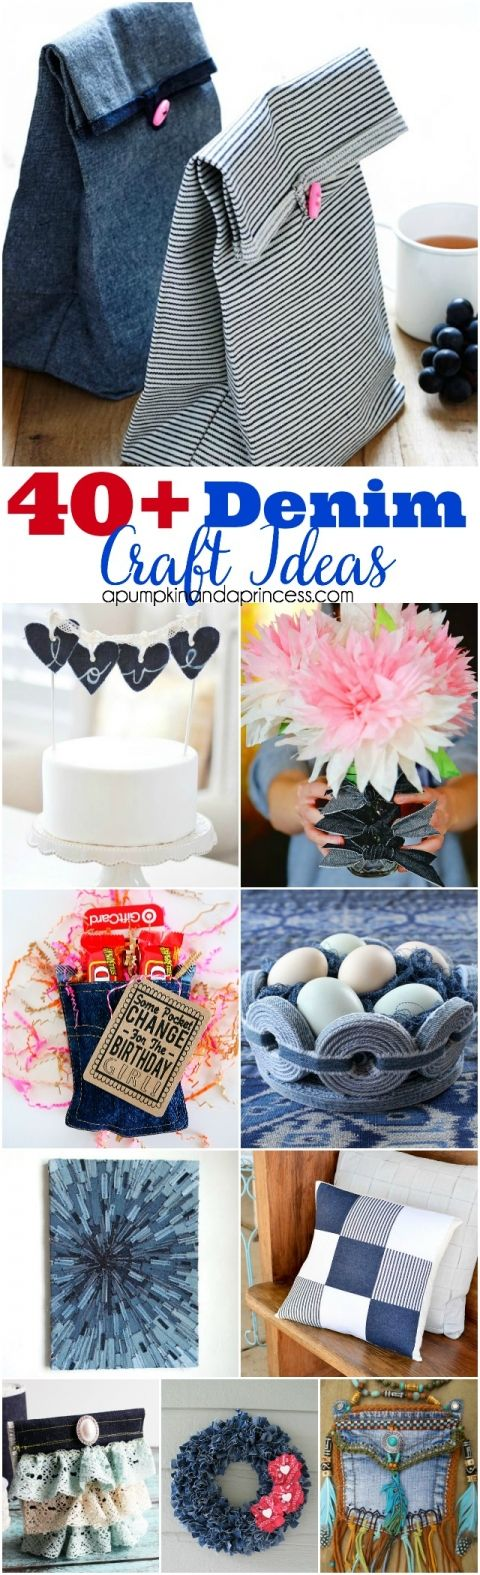 25 best ideas about denim crafts on pinterest recycled for Denim craft projects